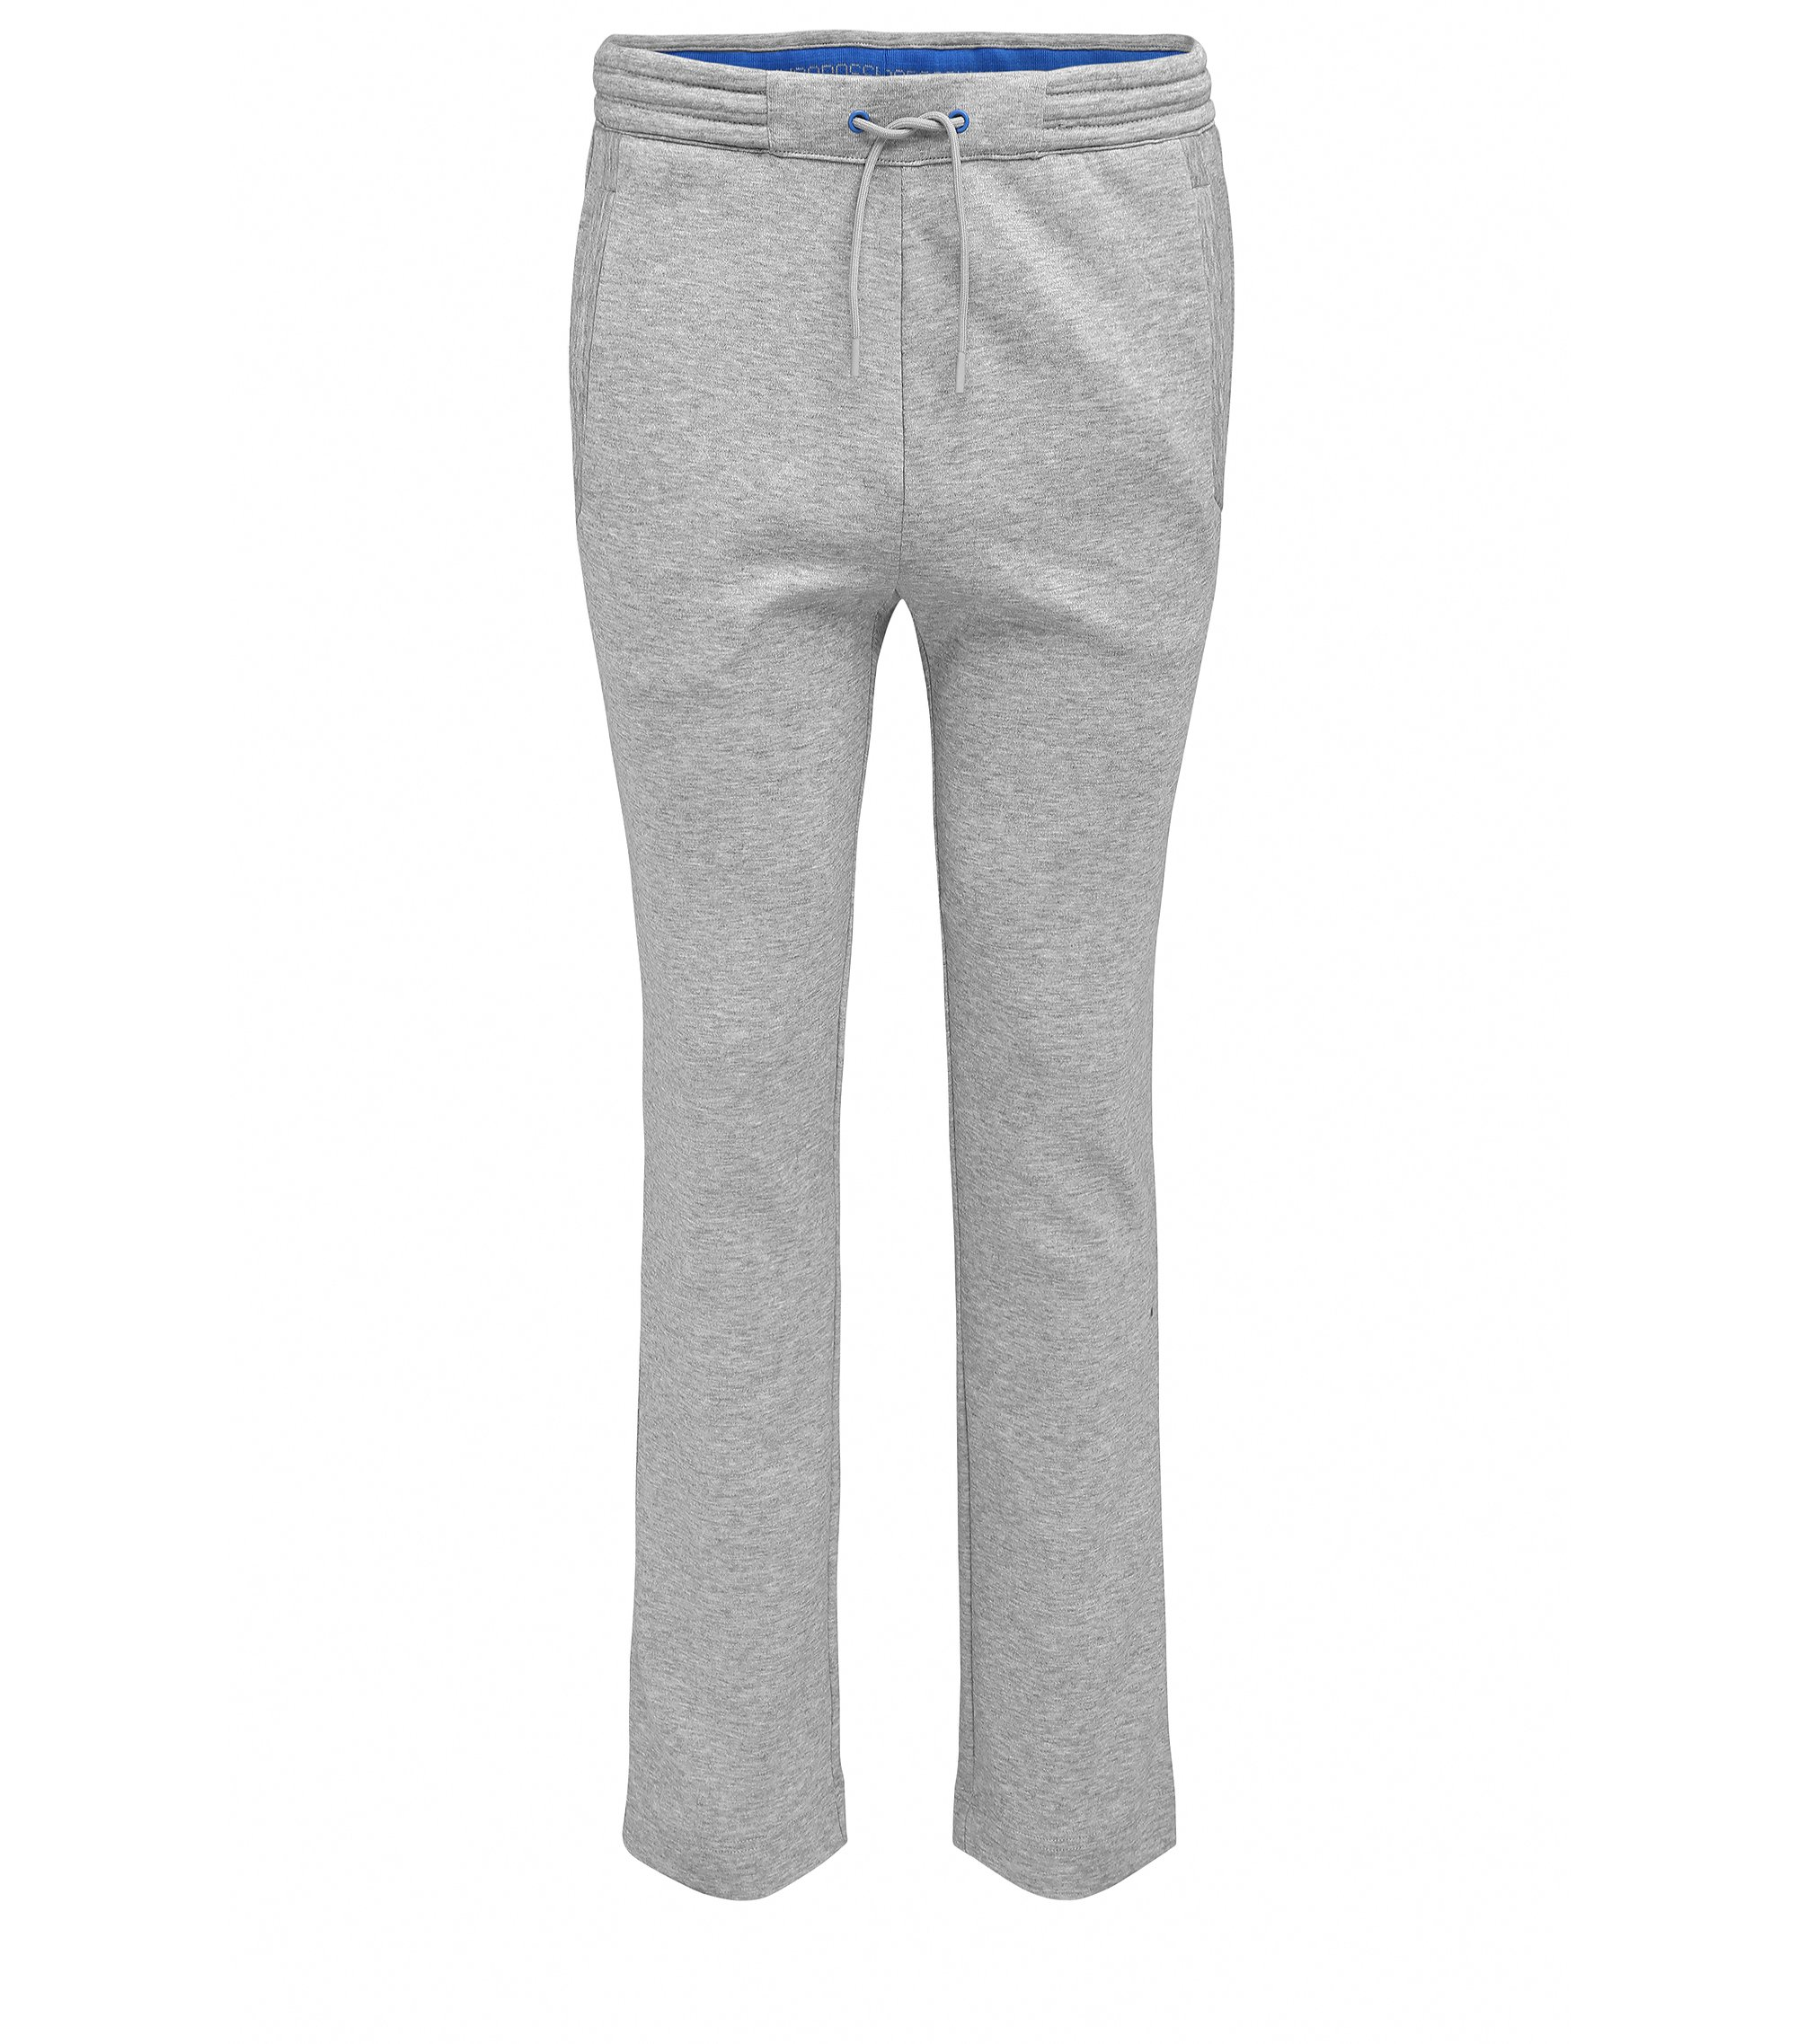 Pantalon en coton Regular Fit, aux finitions droites sans bordures au bas des jambes, Gris chiné